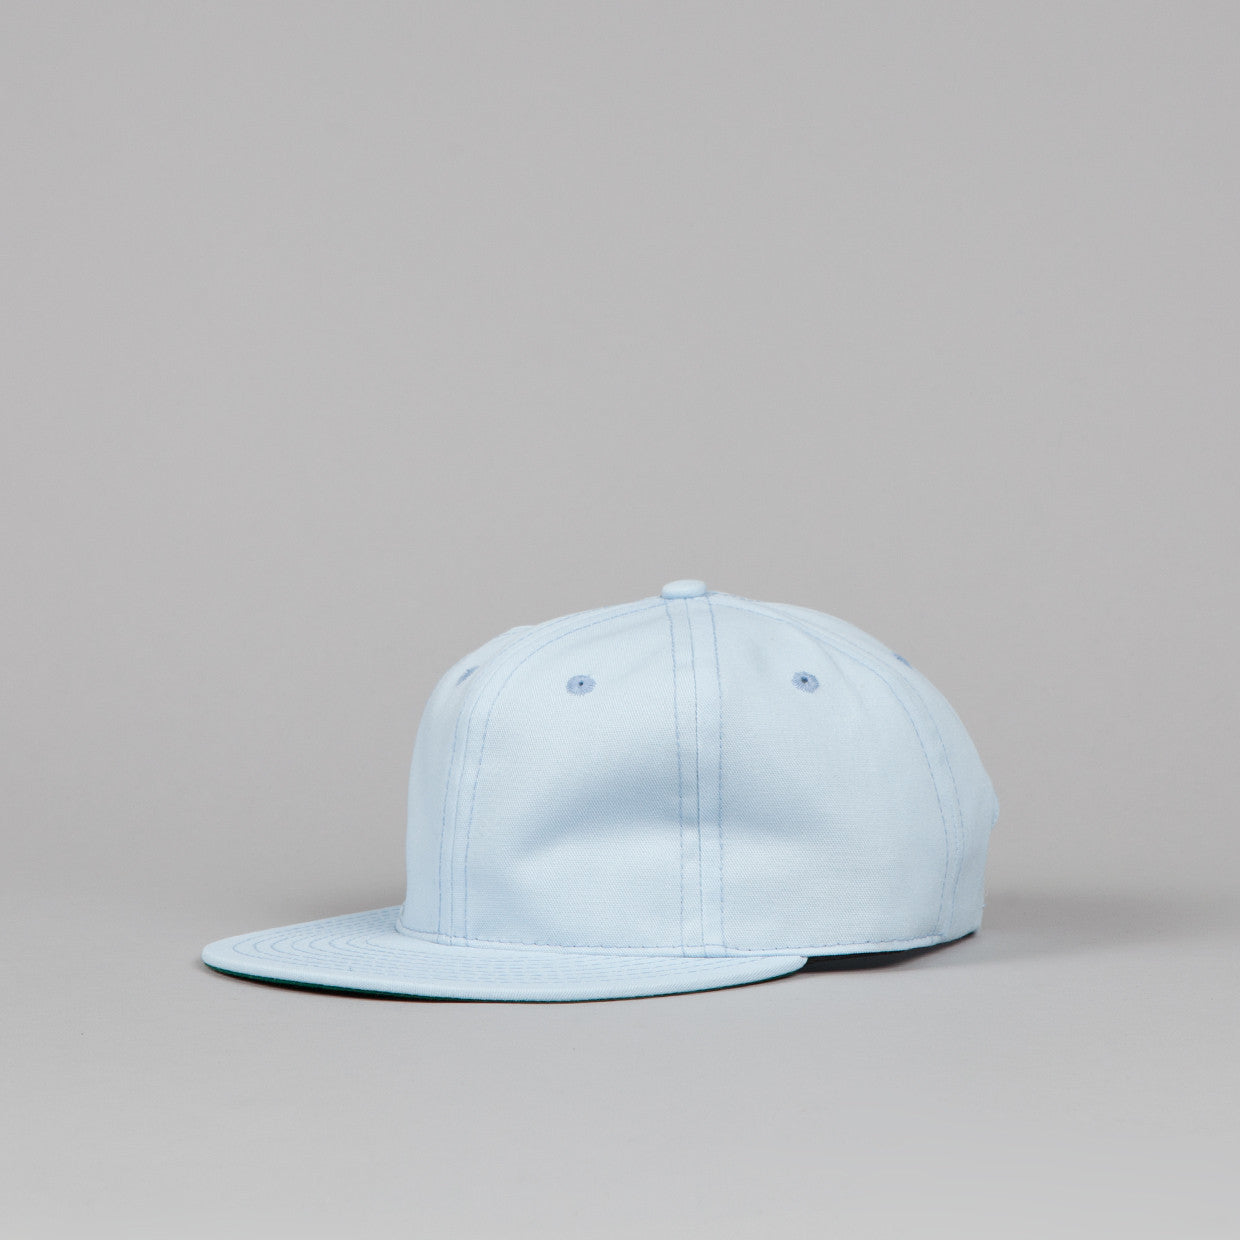 Ebbets Field Flannels Plain Strapback Cap Light Blue